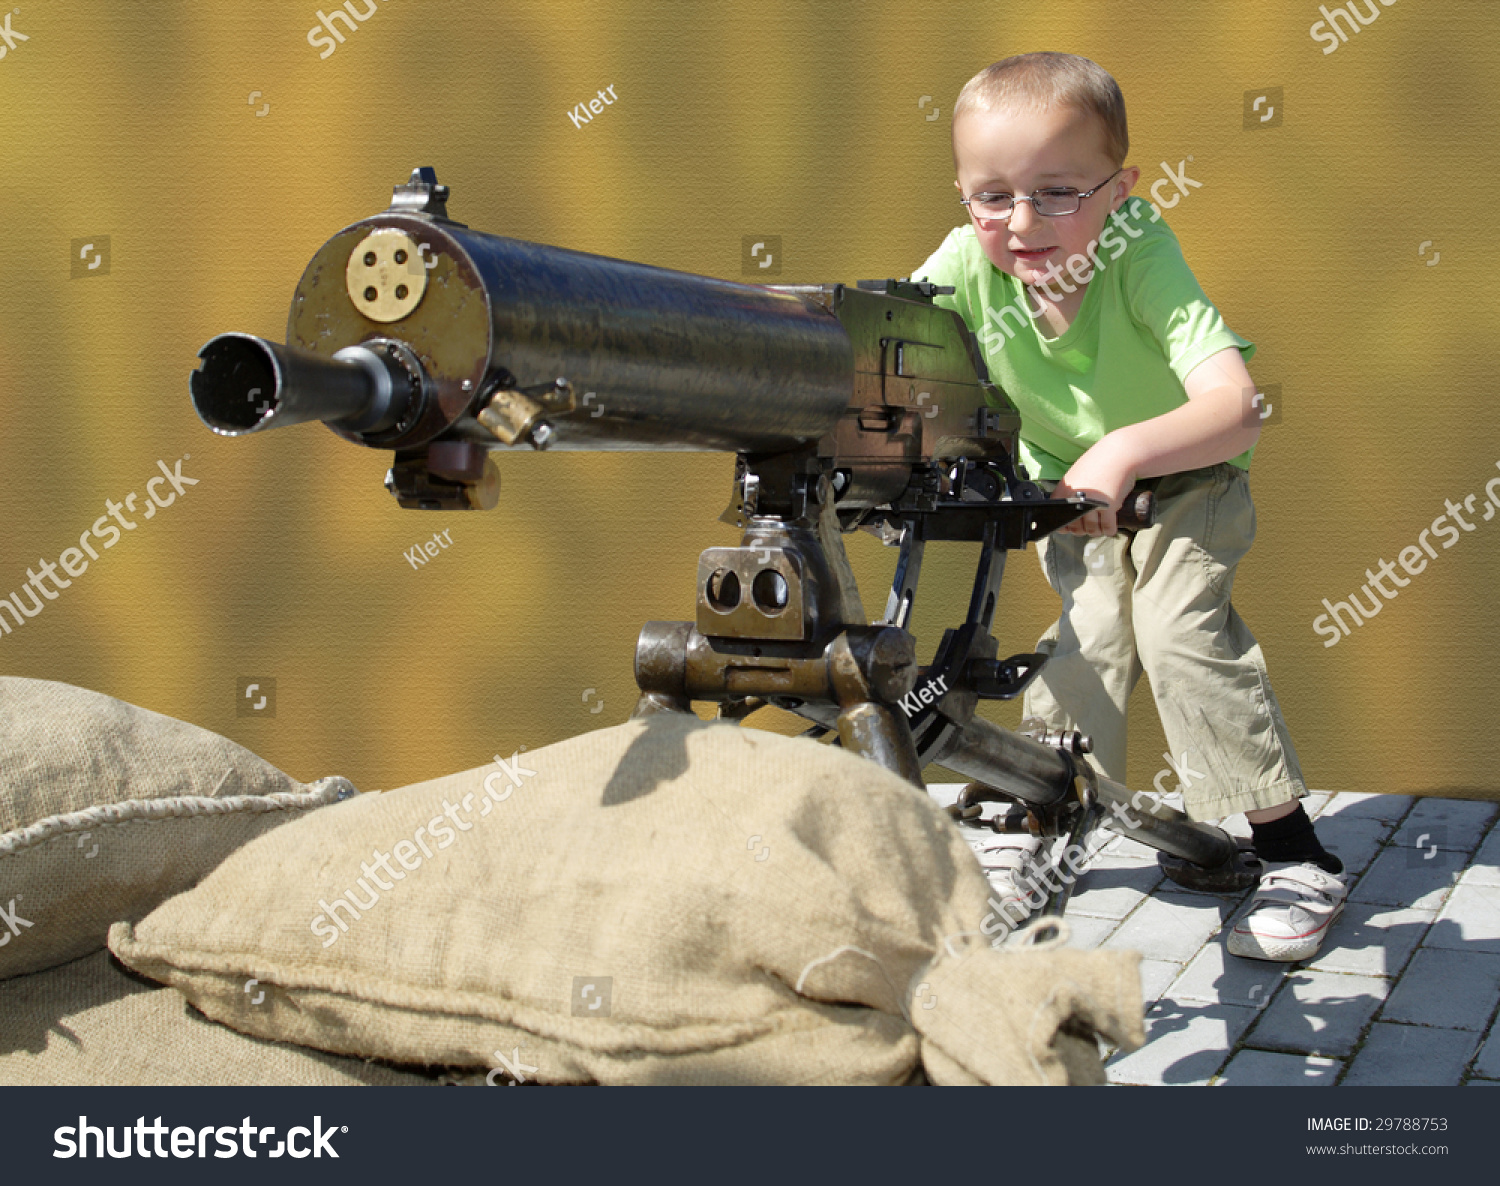 machine gun boy